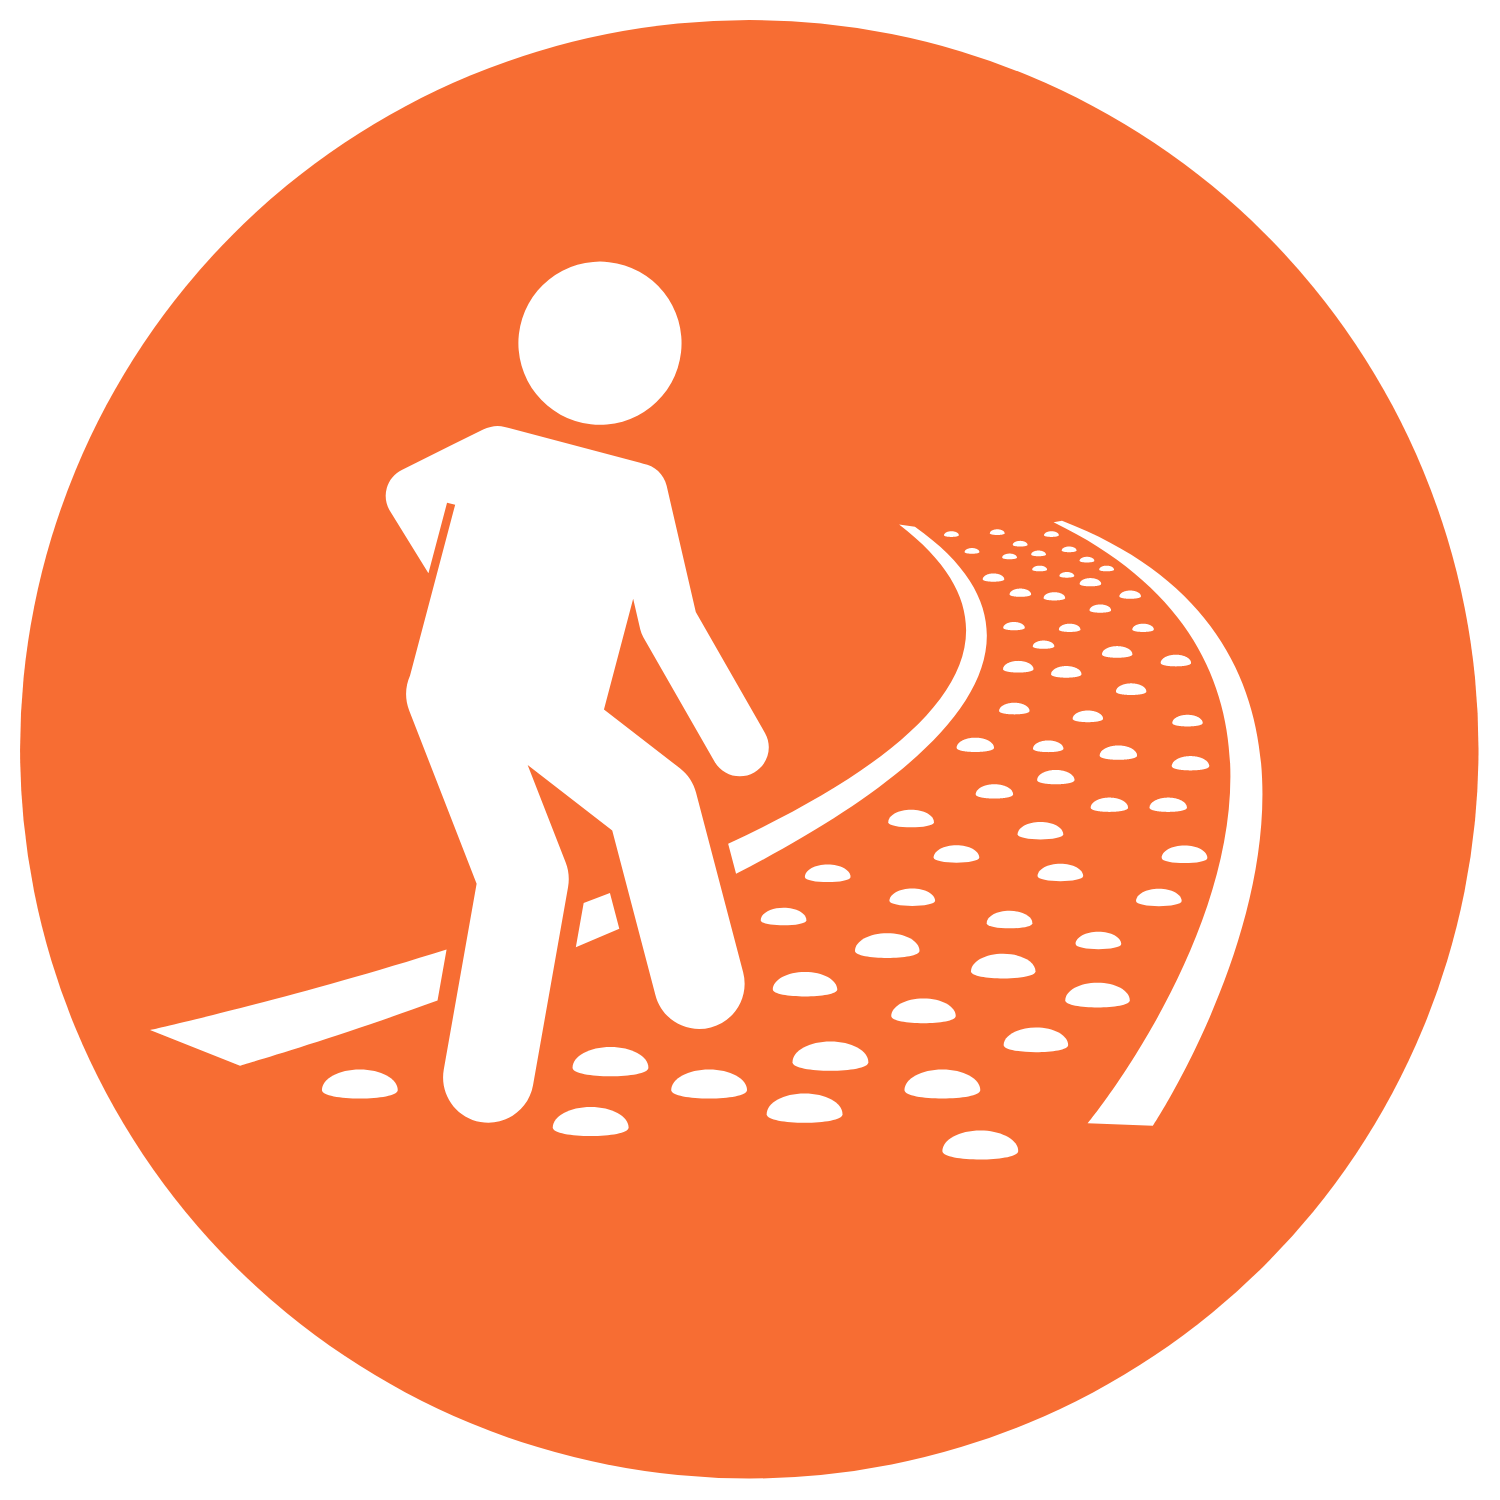 walking a path icon